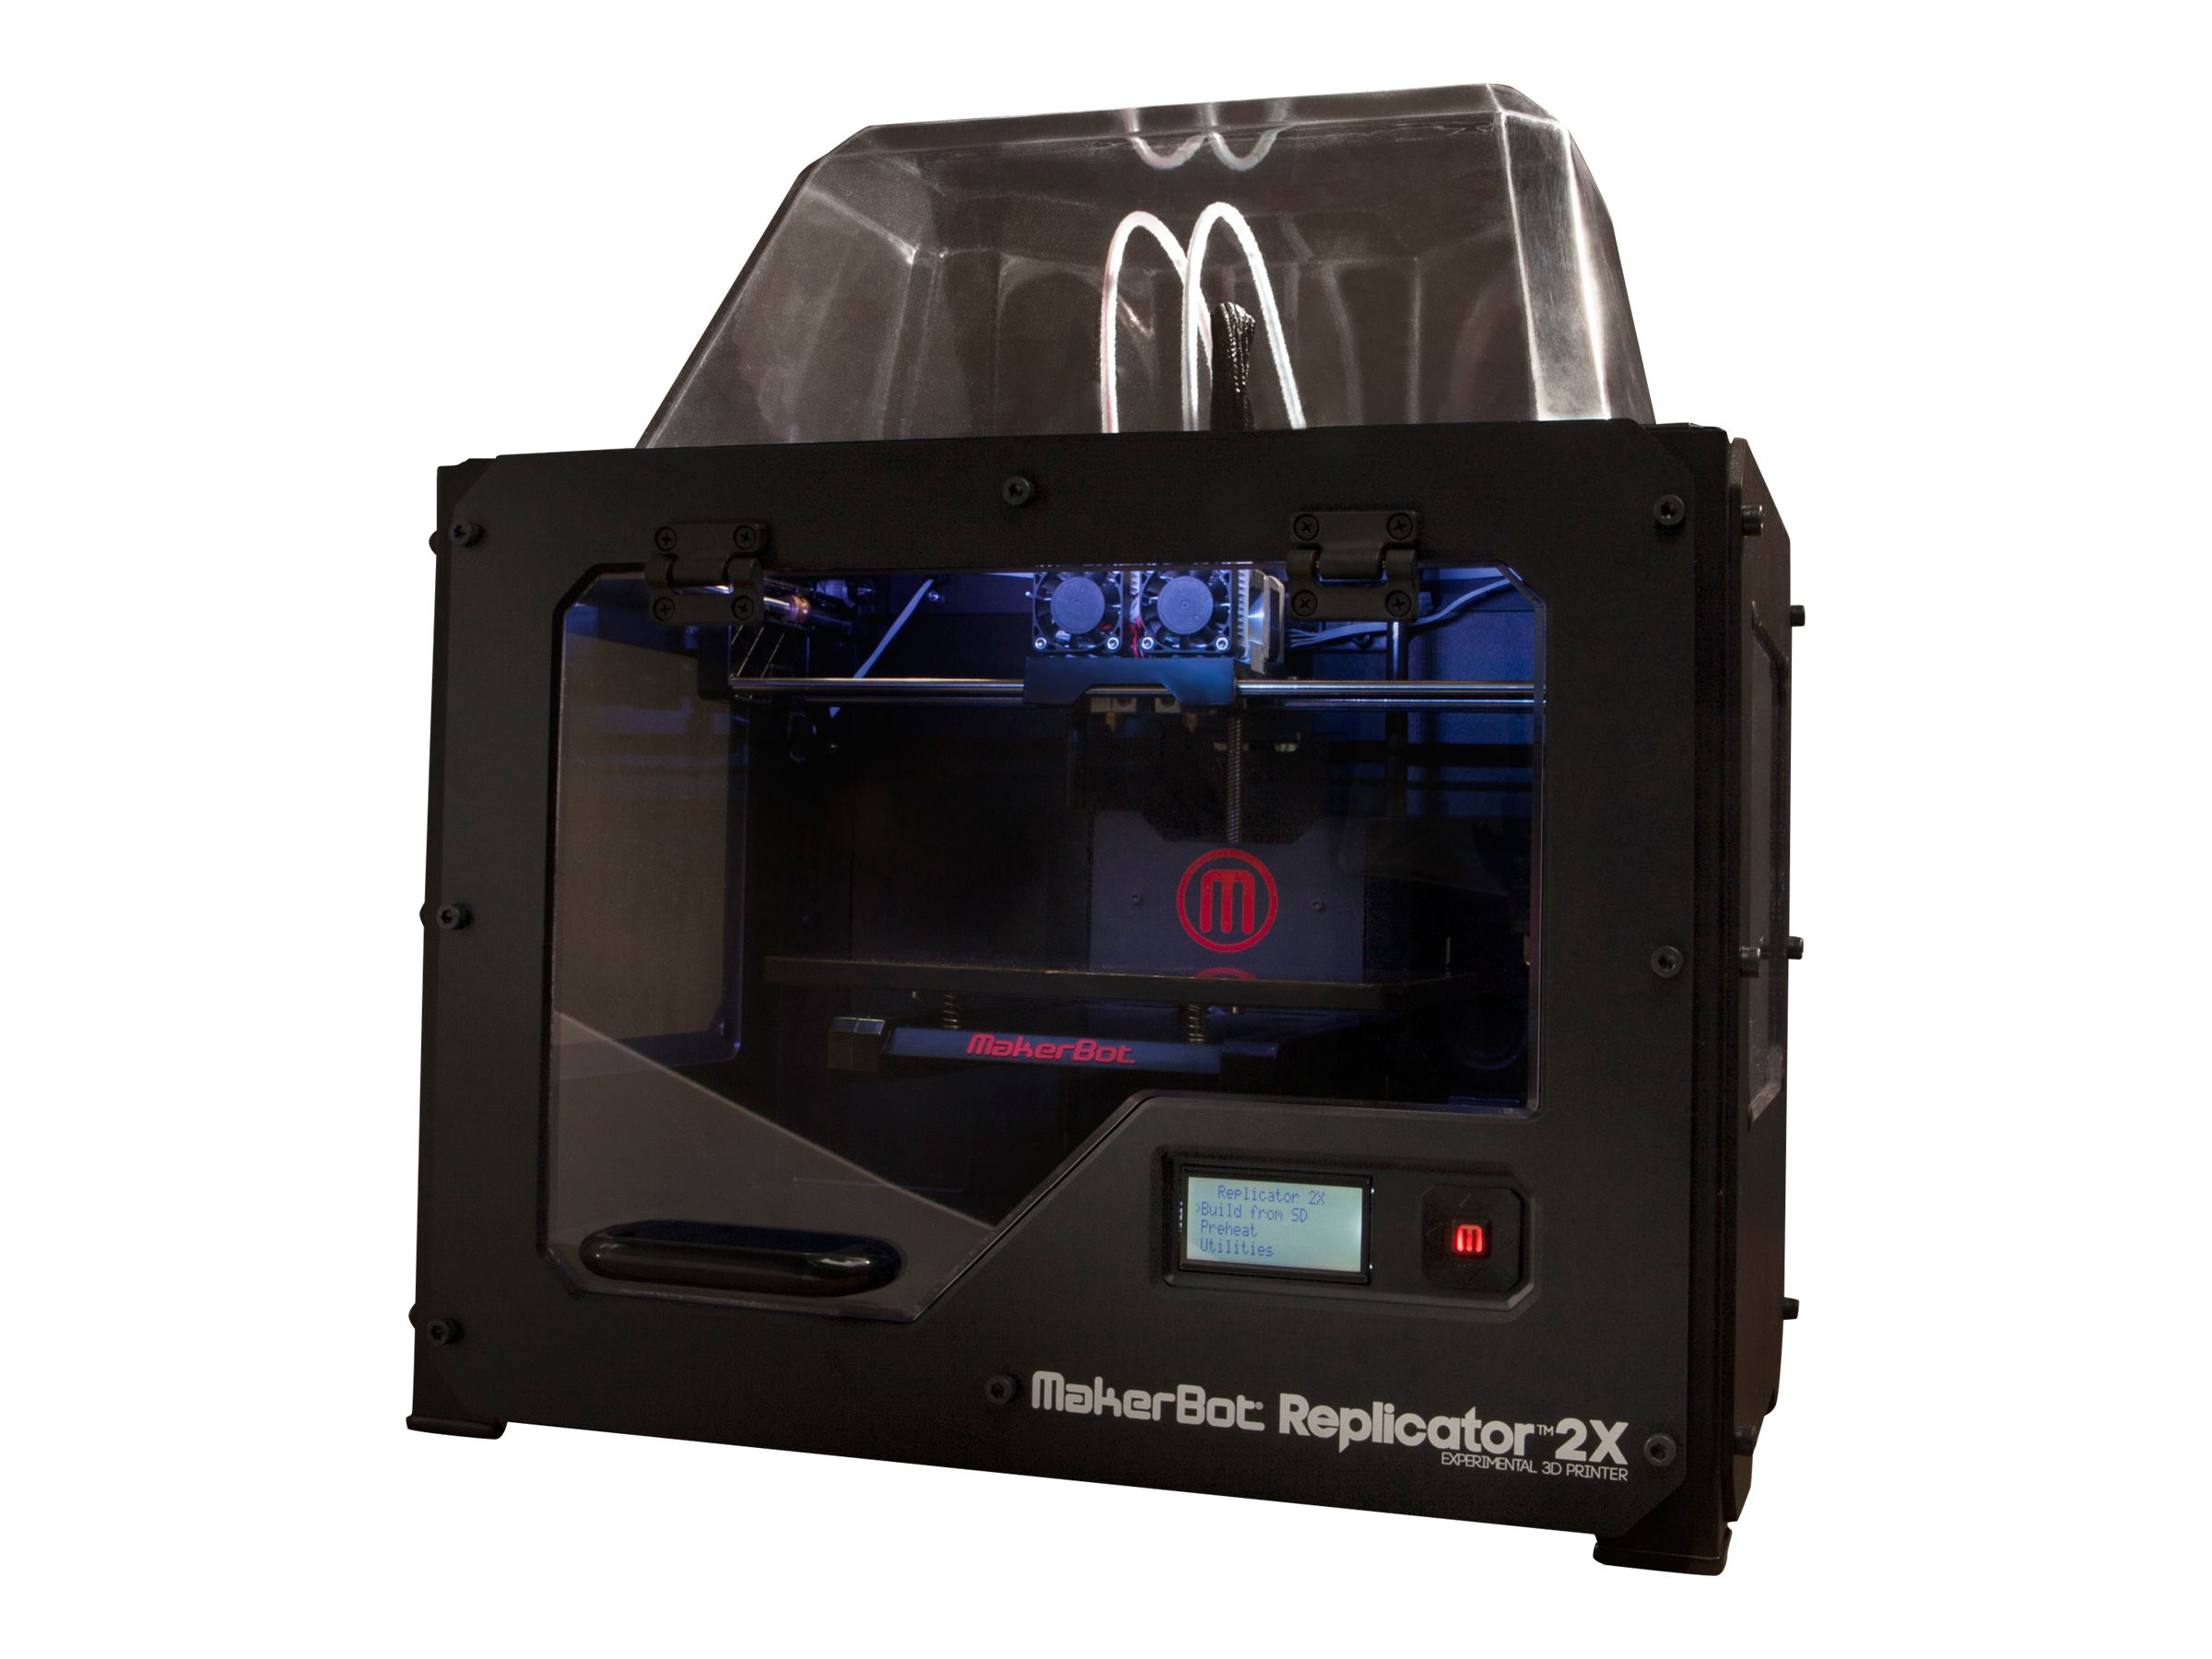 Scratch & Dent MakerBot Replicator 2X Experimental 3D Printer